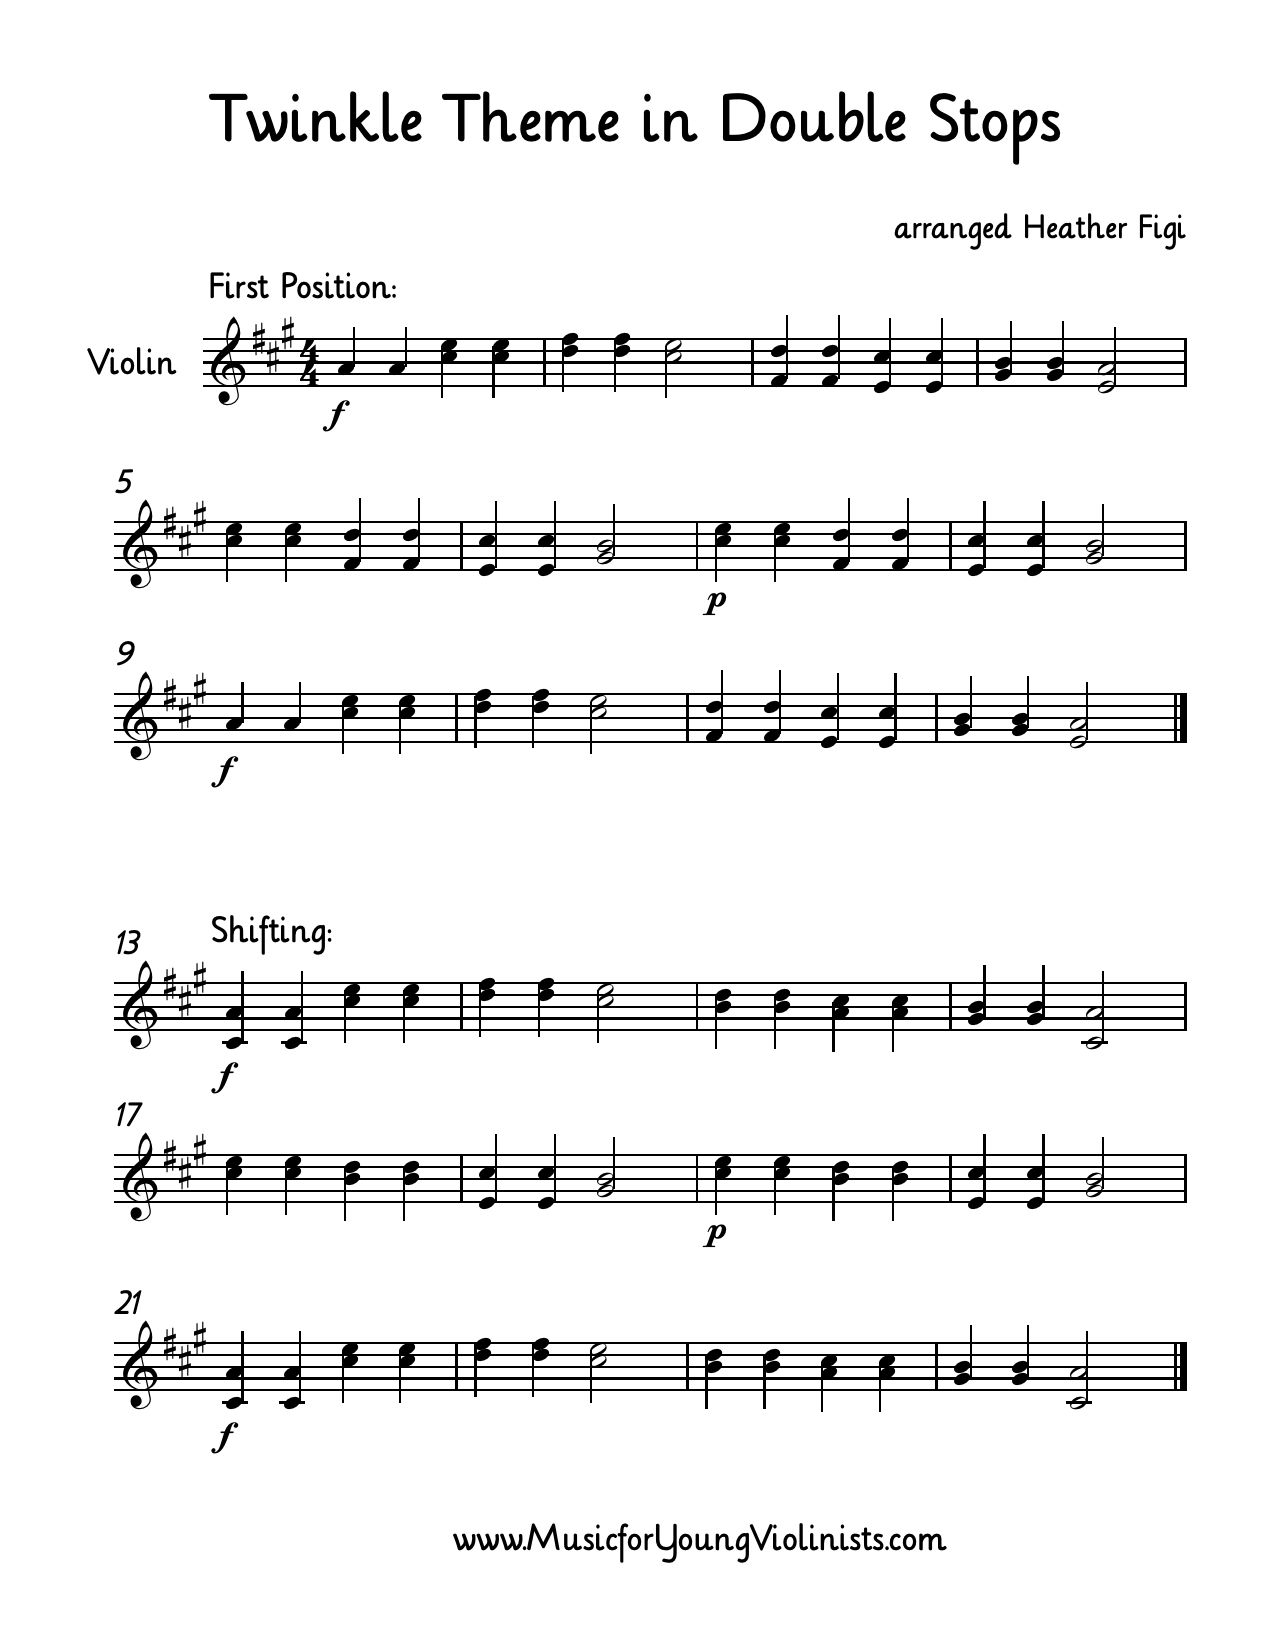 Violin Music Twinkle Theme Arranged With Double Stops First